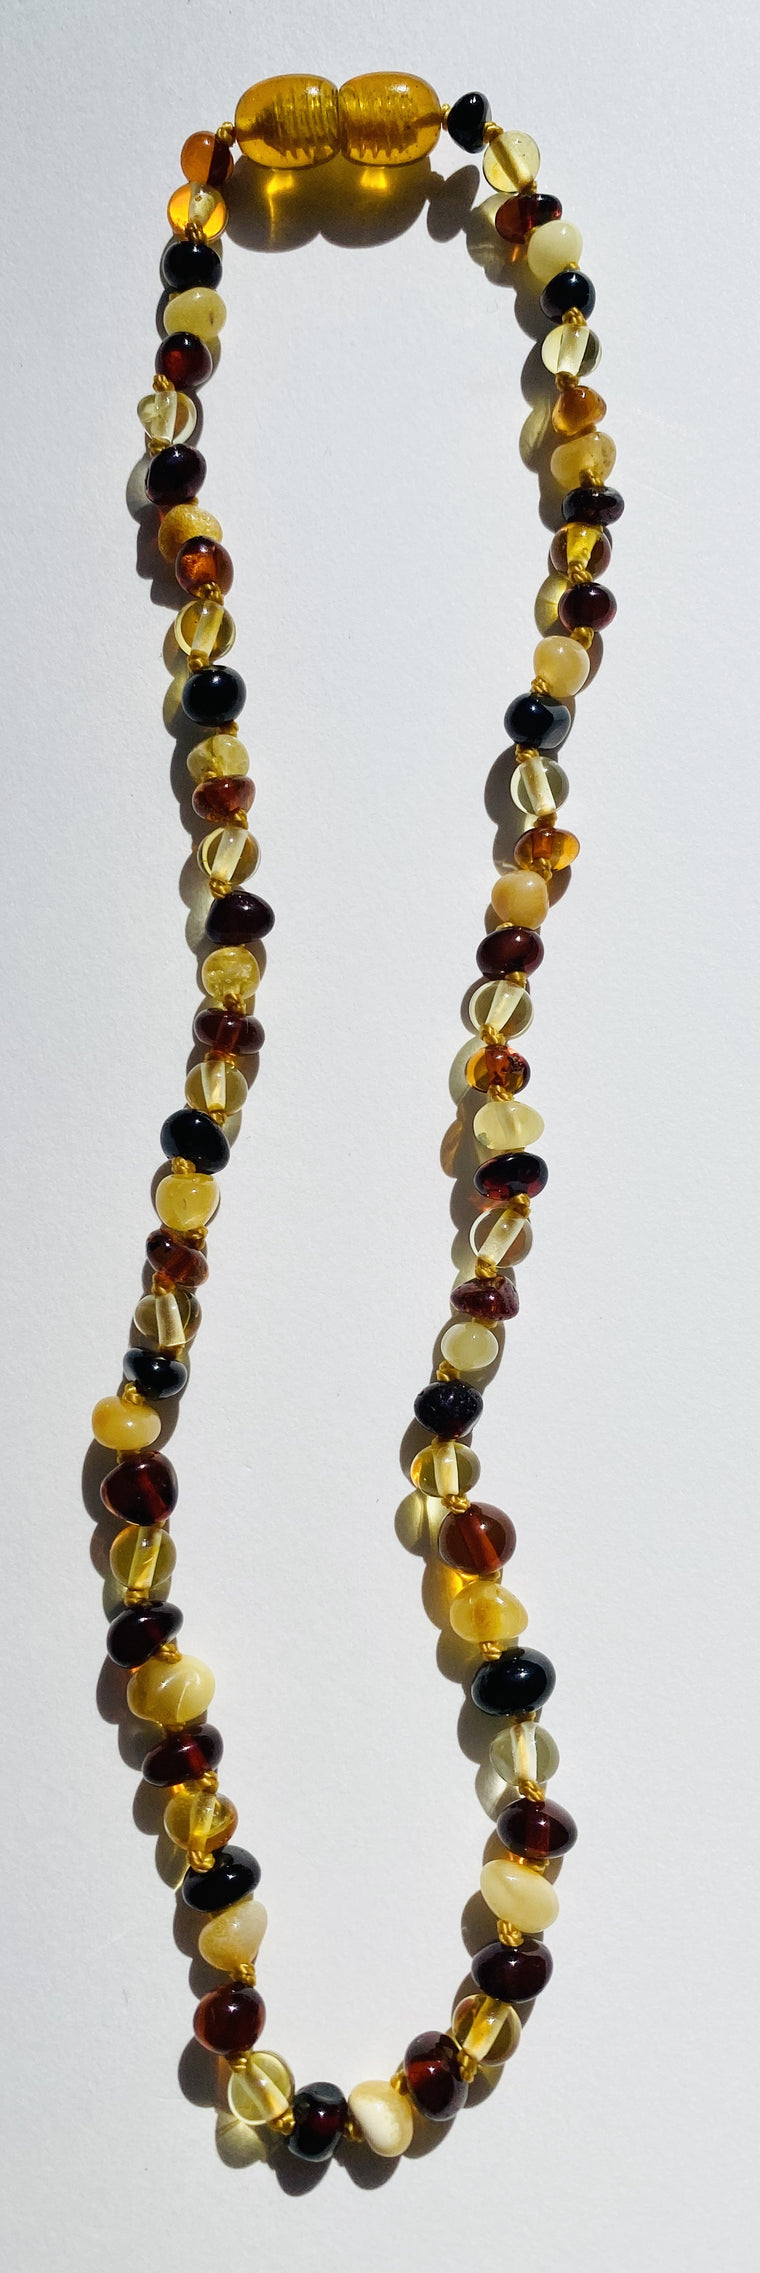 Hand Knotted Amber Baby Teething Necklaces Multi Chips